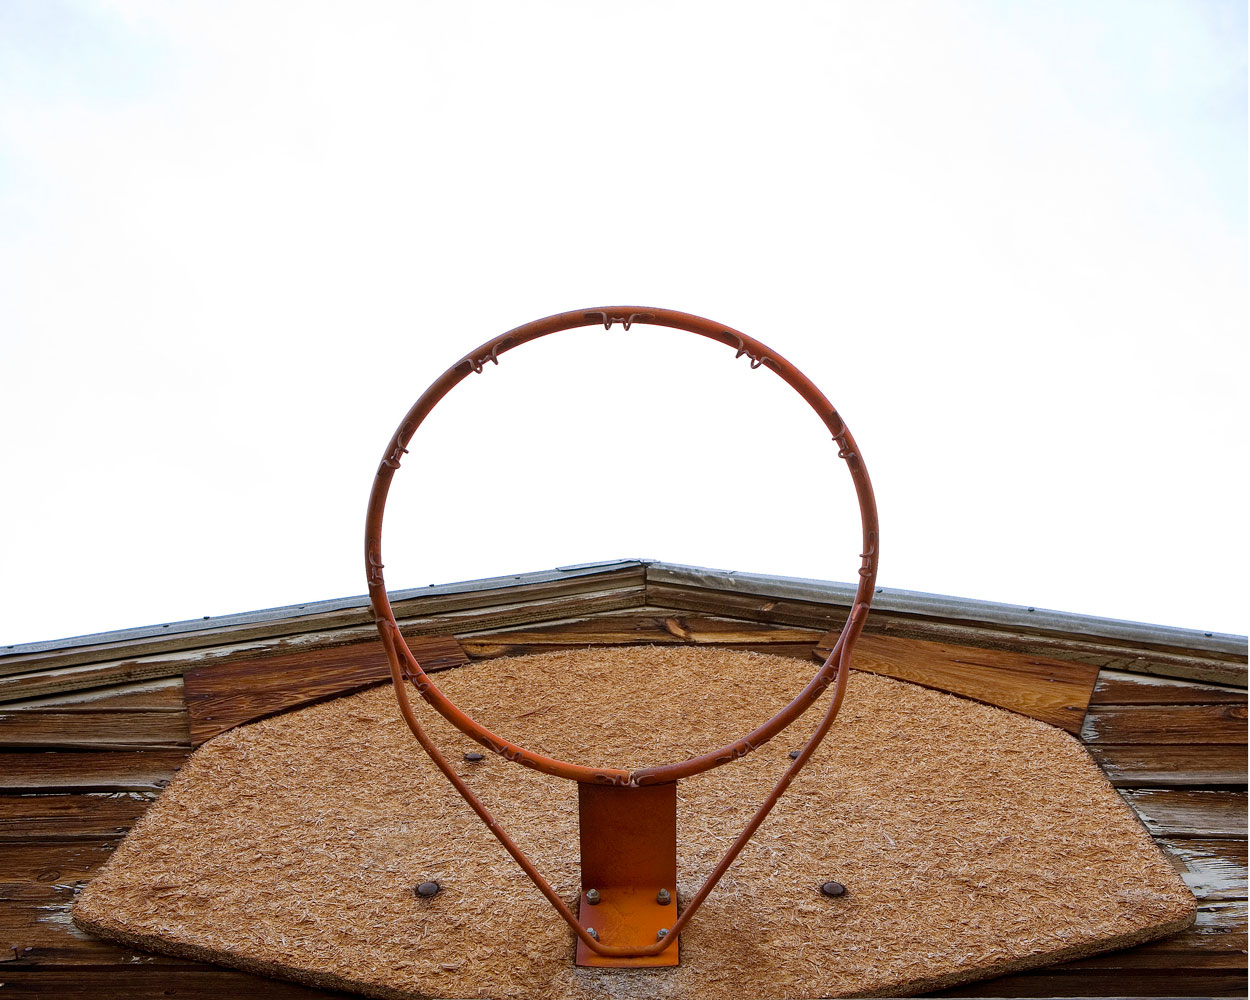 """Title: 5100A-19617 (basketball hoop), Archival pigment print, 20x16"""", 2008"""